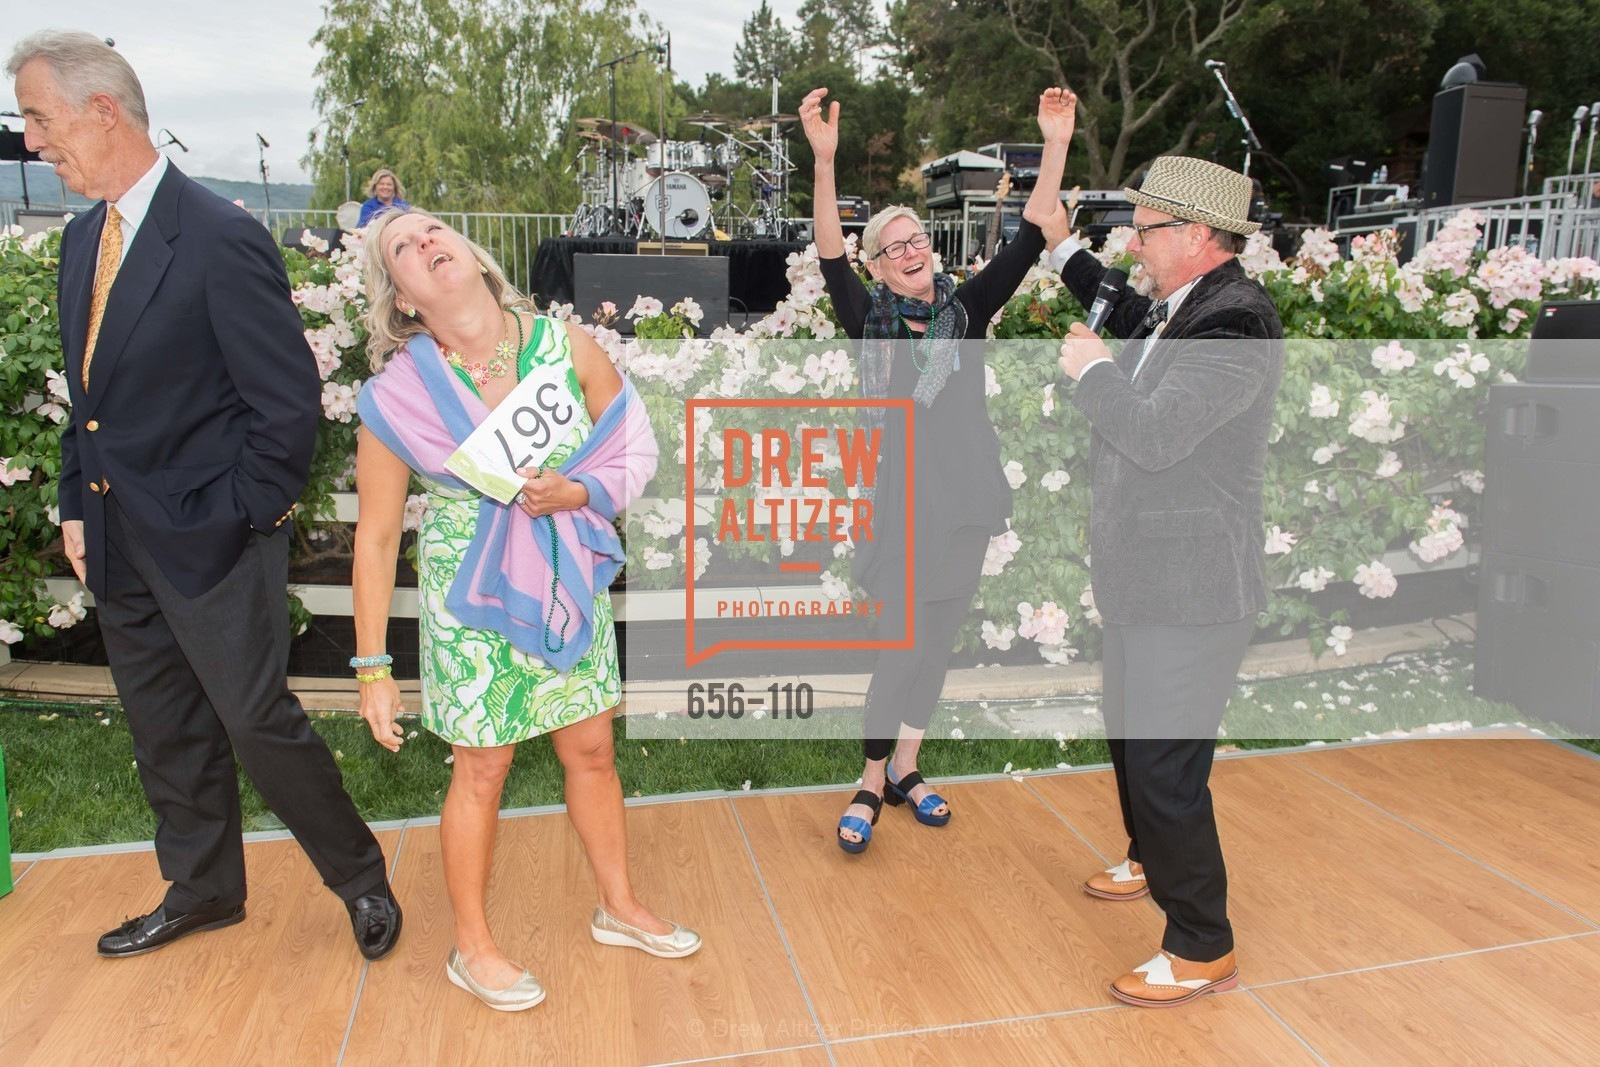 Graham Shaw, Princess Julia Shaw, Cynthia Woods, LYME AID 2015 Benefiting the Bay Area Lyme Foundation, Private Residence, May 16th, 2015,Drew Altizer, Drew Altizer Photography, full-service event agency, private events, San Francisco photographer, photographer California